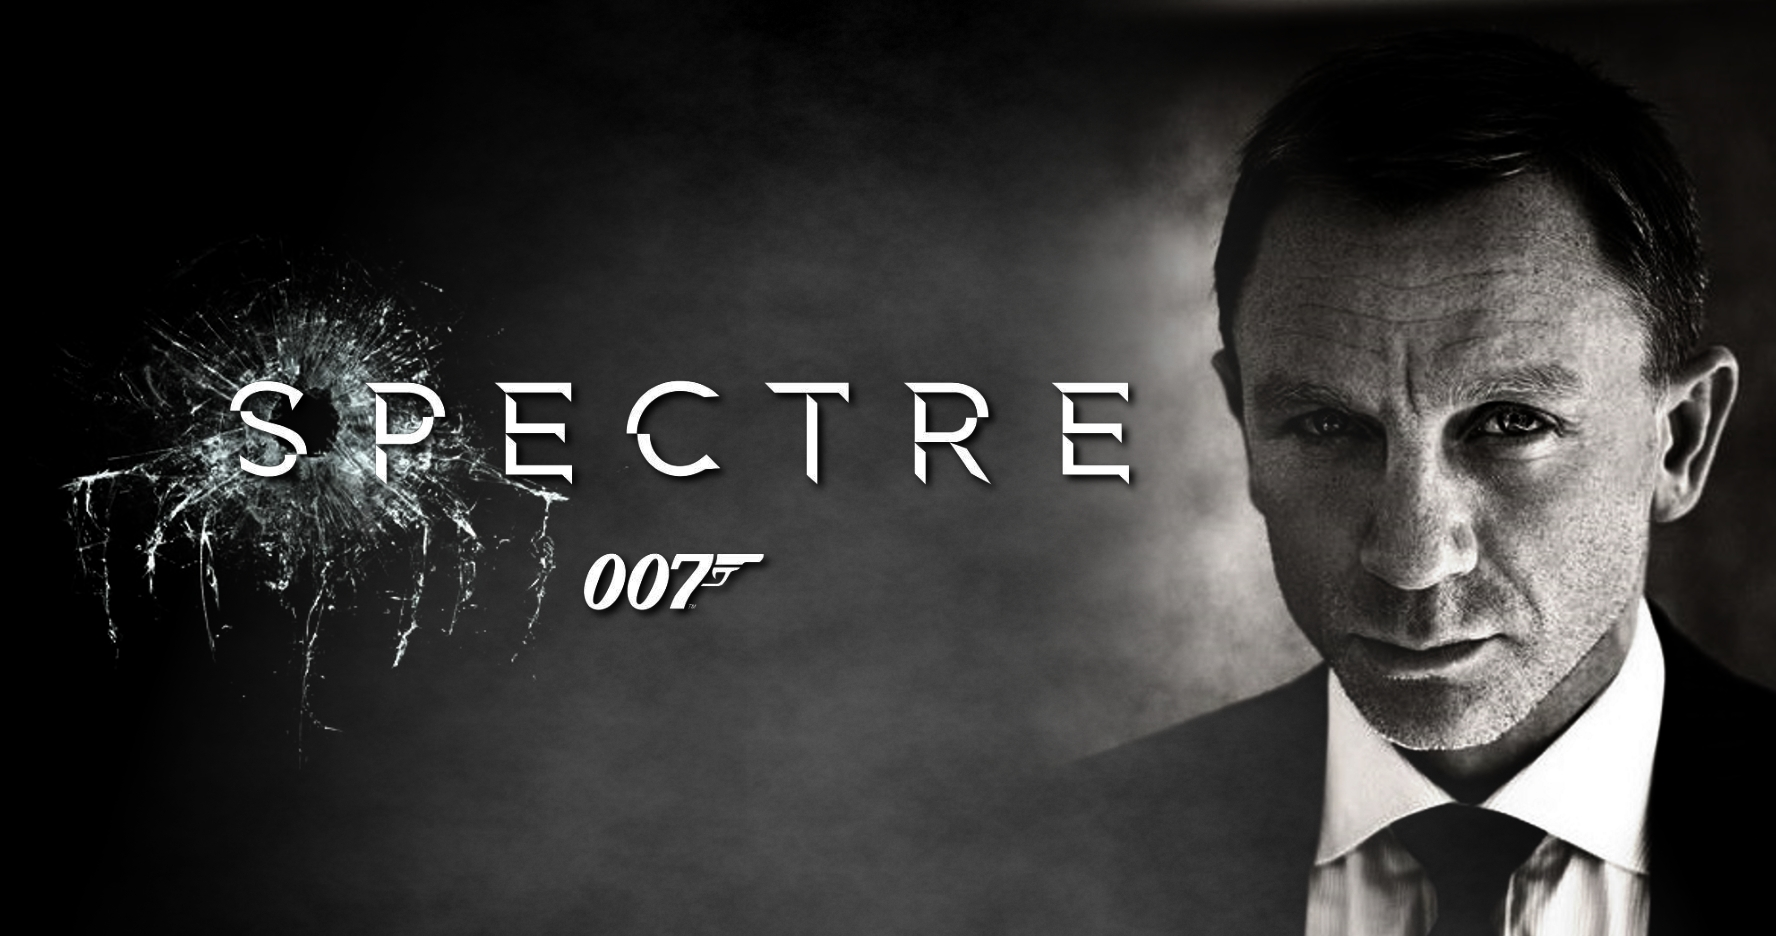 Spectre 007 Wallpaper Related Keywords Suggestions   Spectre 007 1780x936